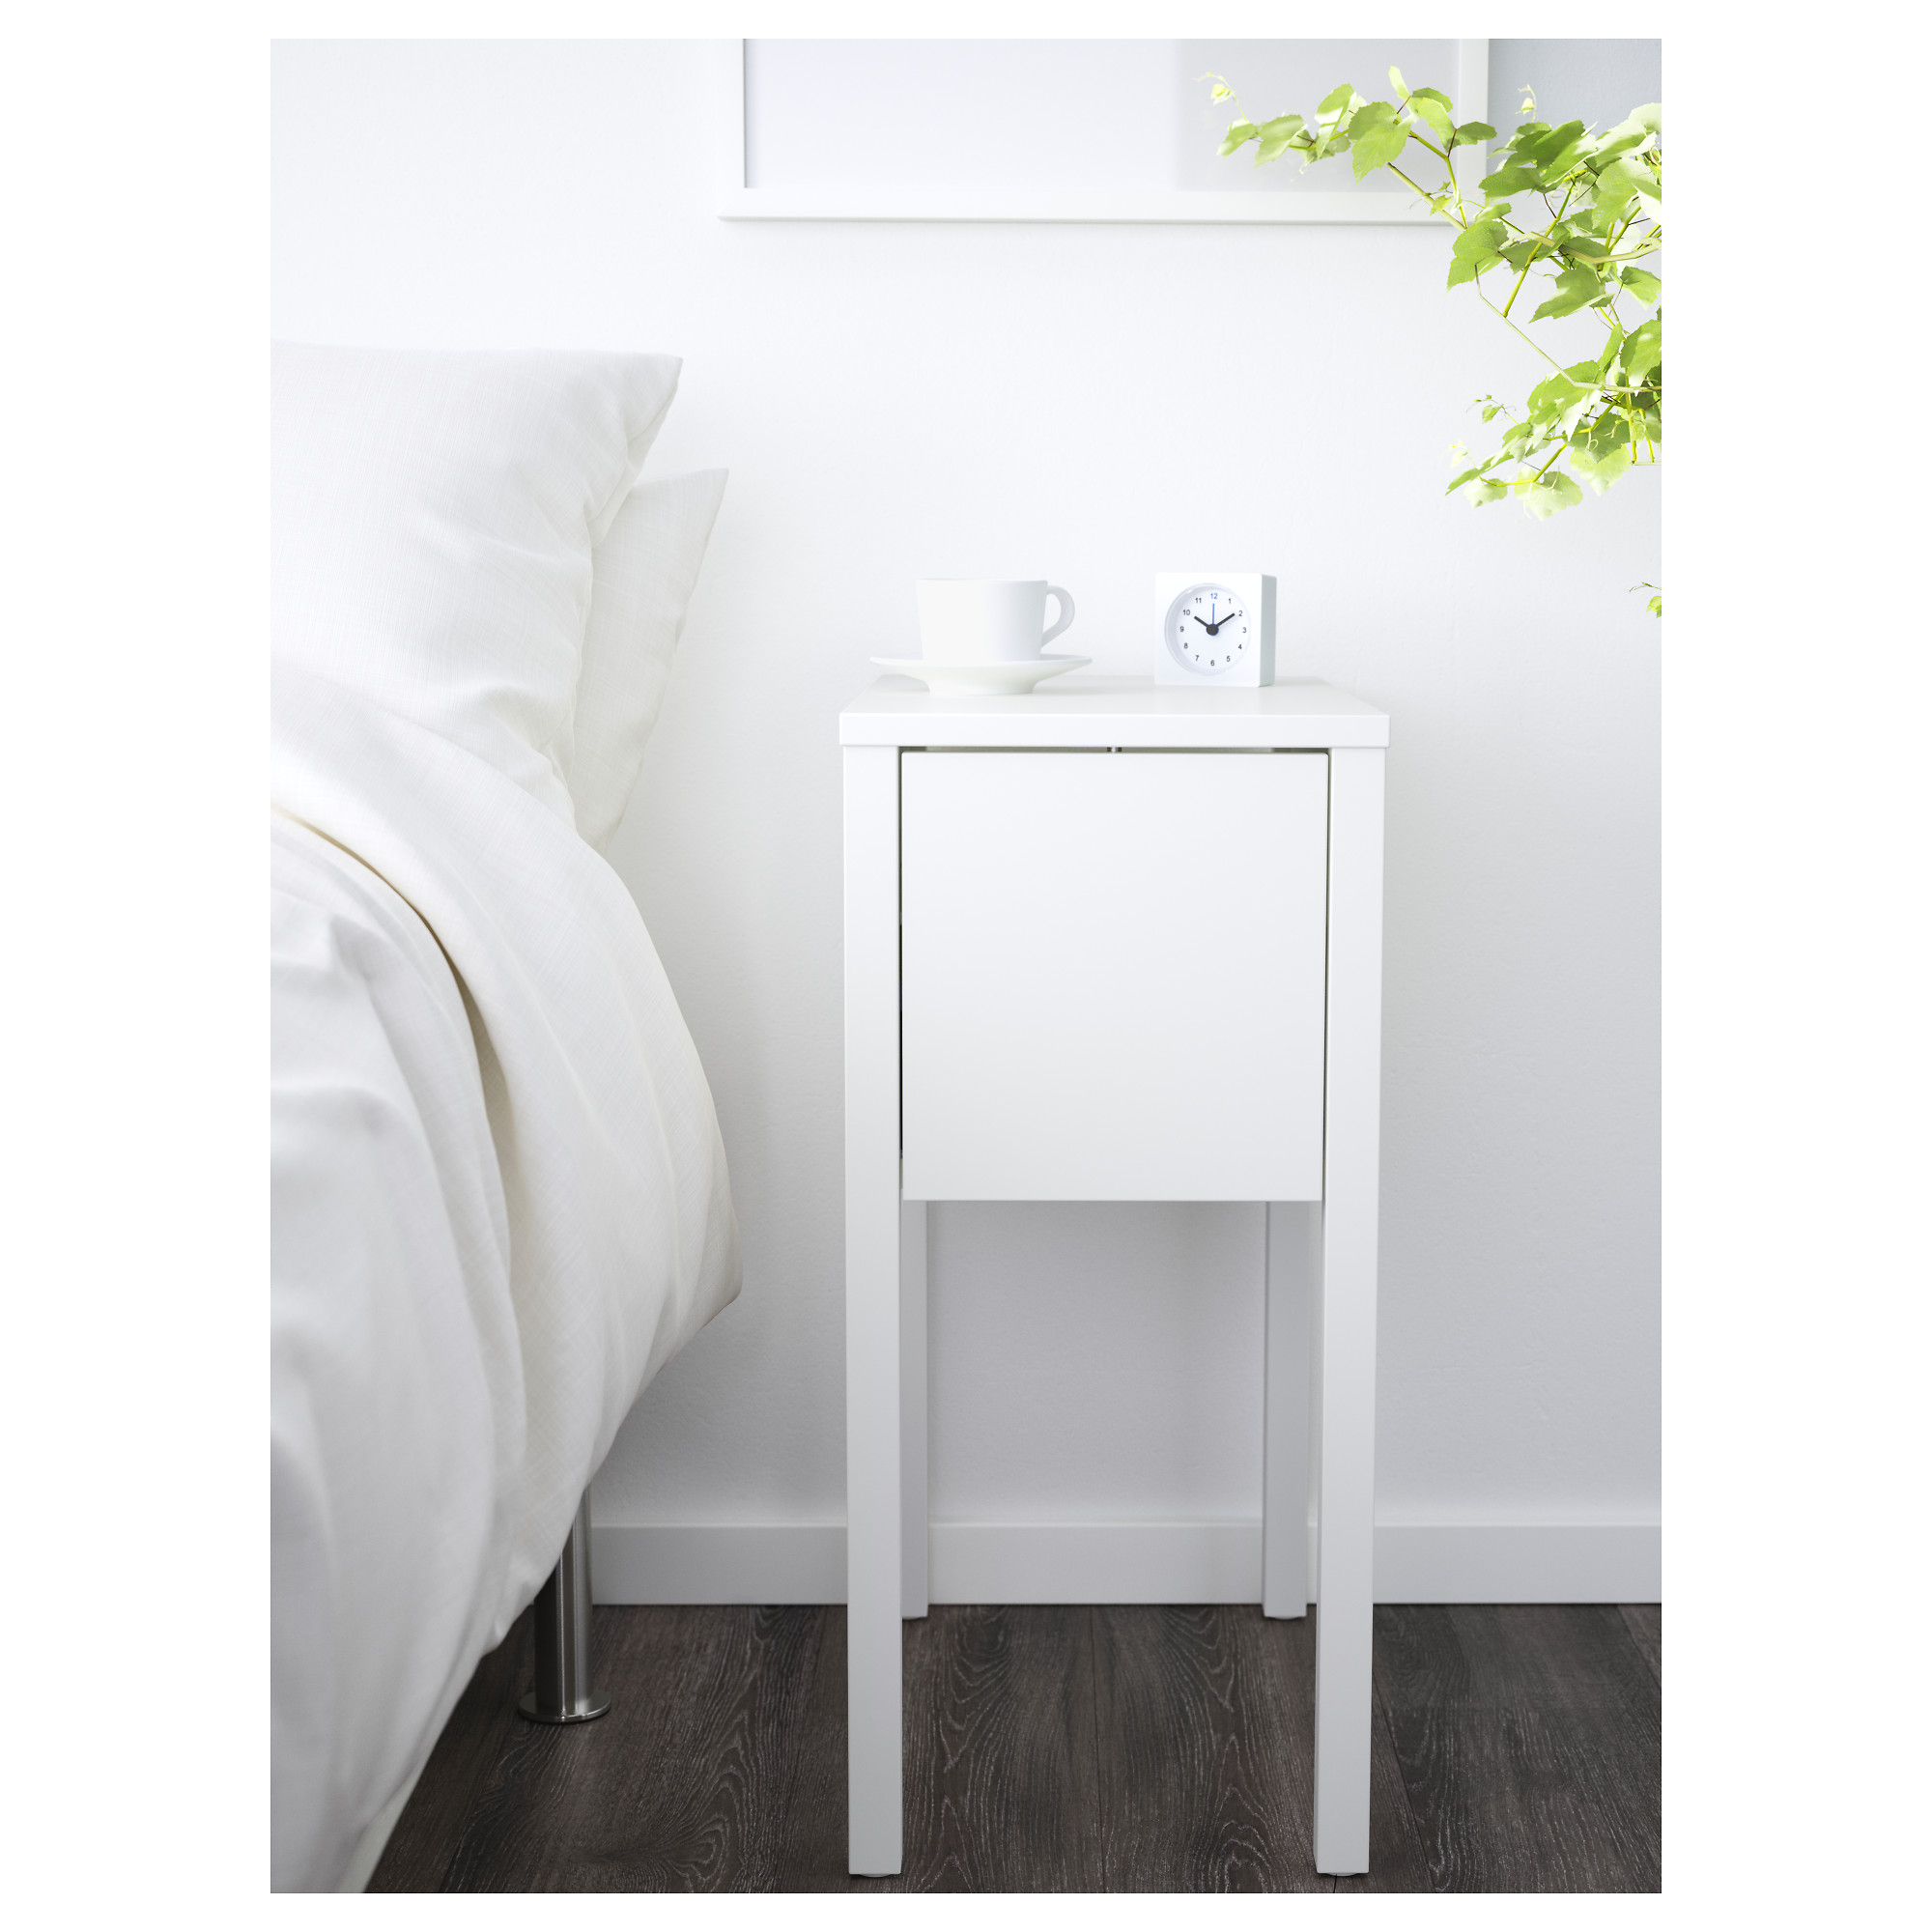 probably terrific free ikea black brown end table jockboymusic superior tables bedroom side bedside nightstands nordli nightstand and white glass coffee furniture small accent